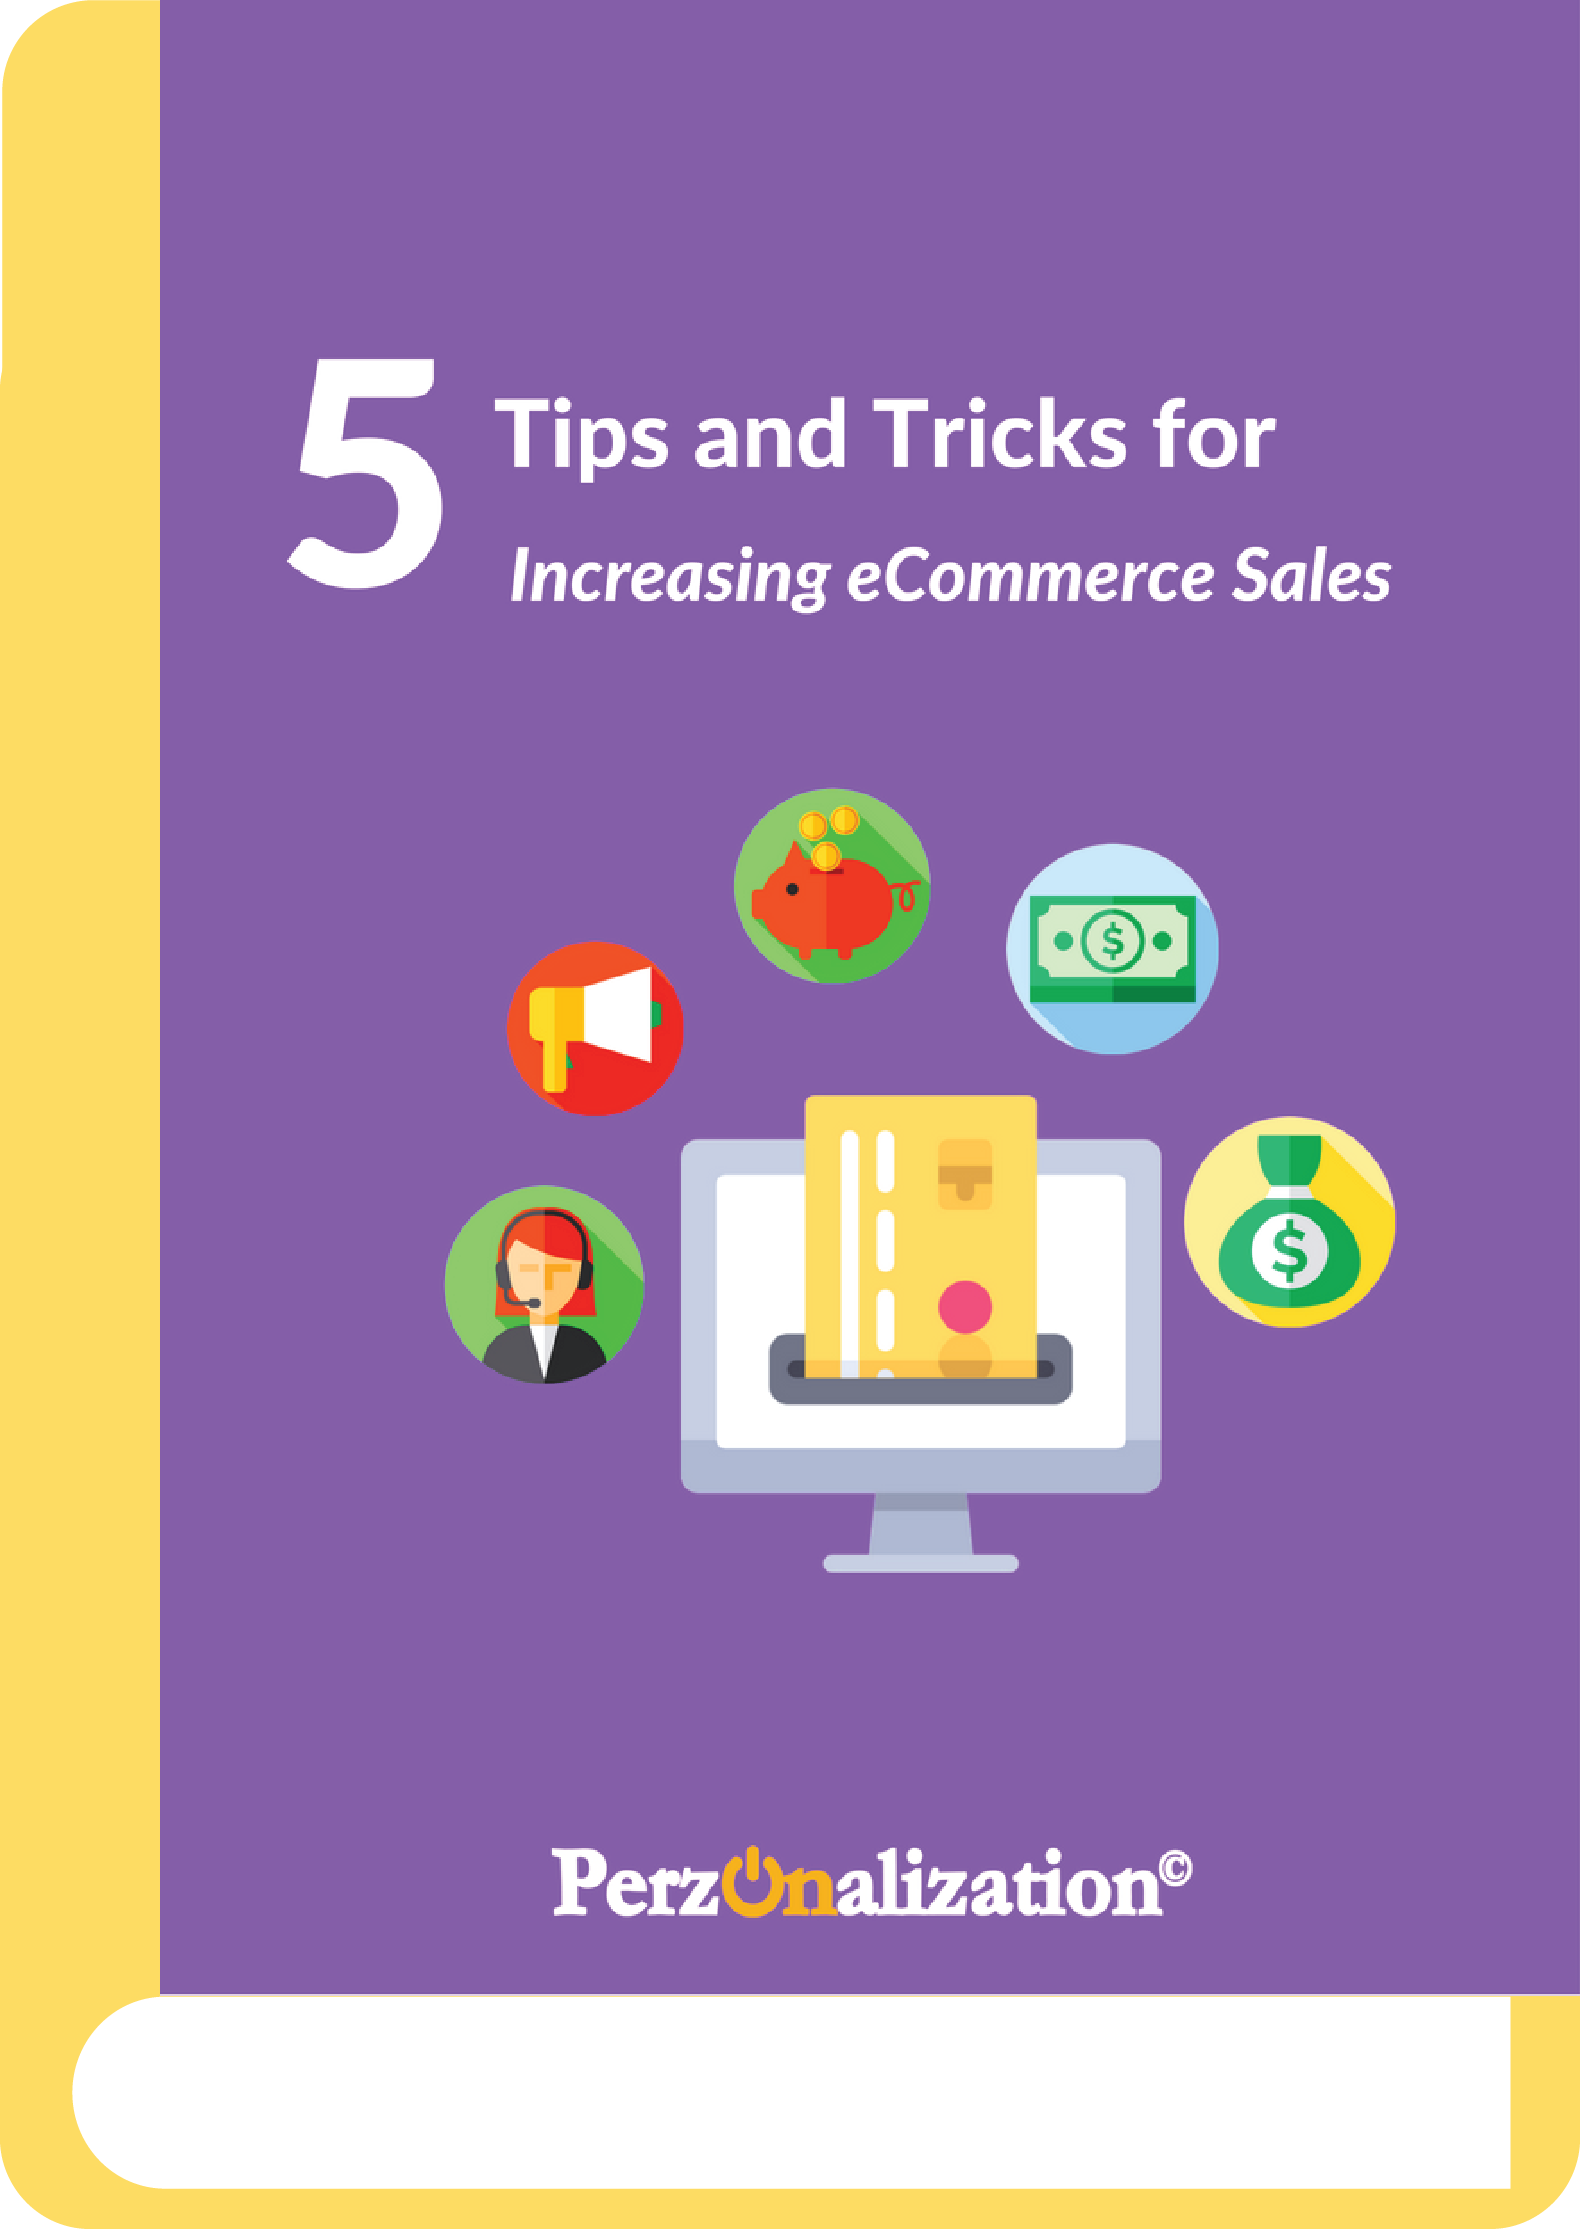 If you'd like to increase eCommerce sales, take a look at our handy eBook here. Try some of the tips discussed and be sure to bring some more conversions!